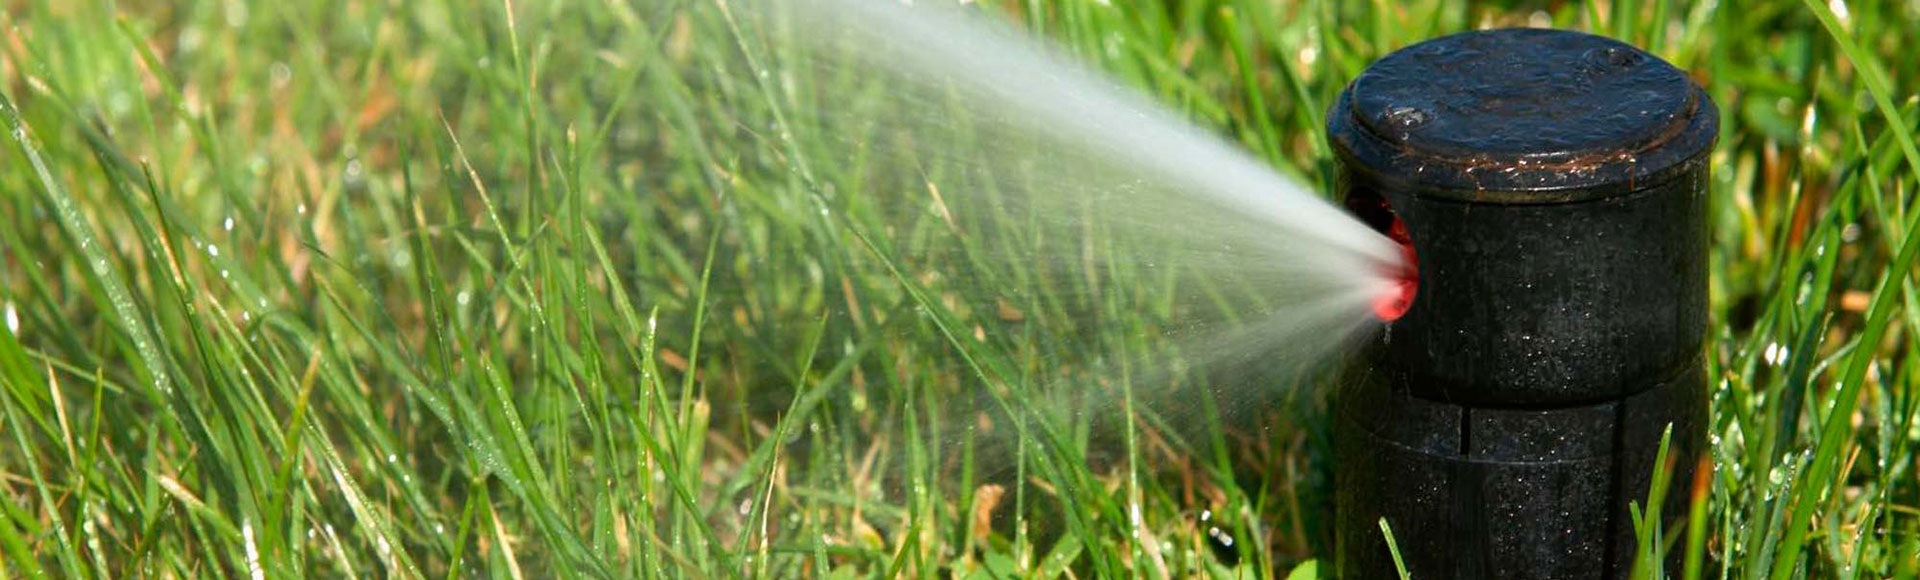 wichita-sprinkler-systems